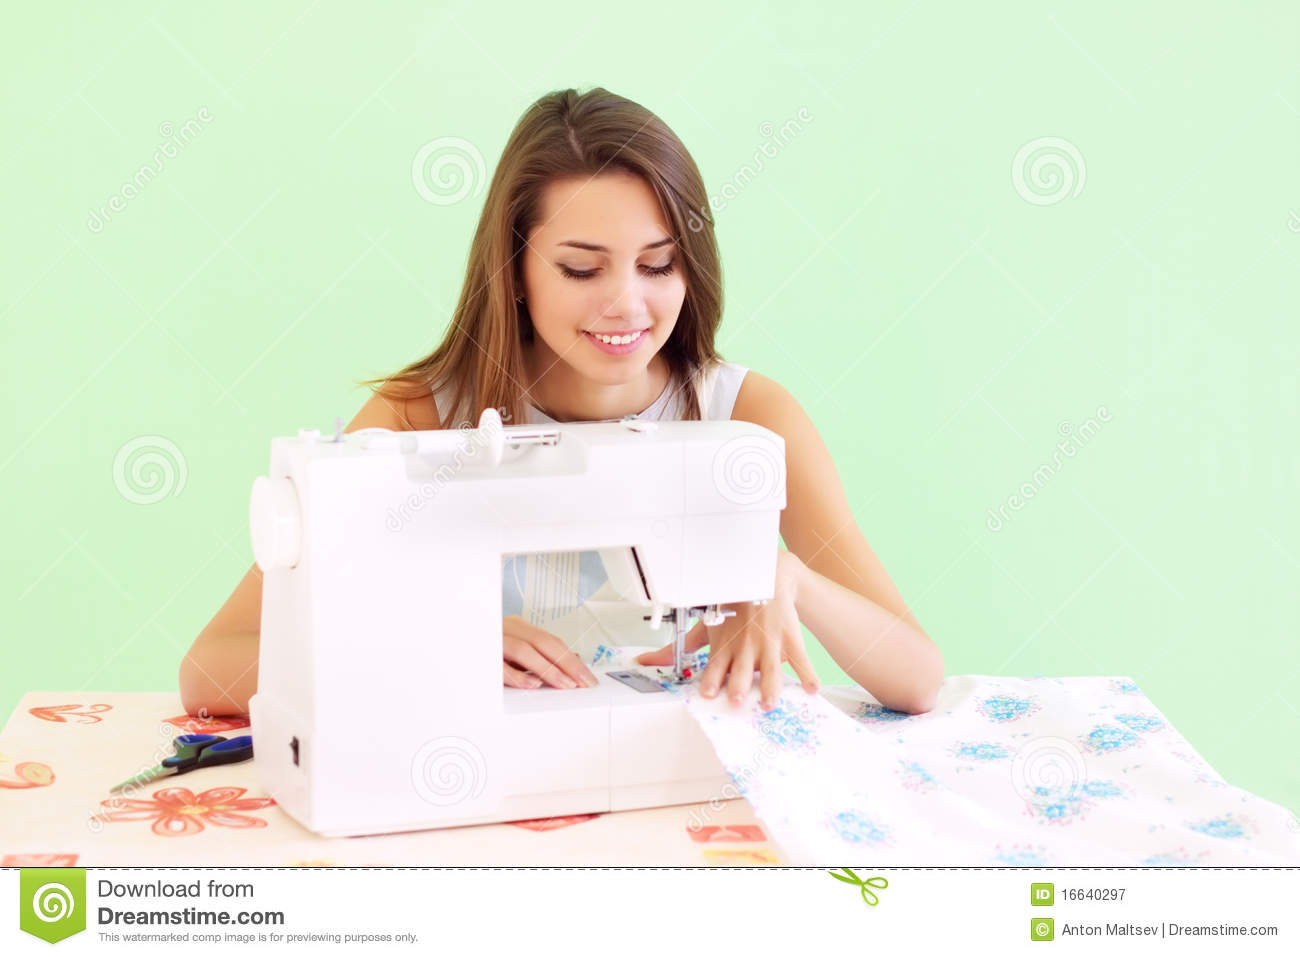 Seamstress working royalty free stock photography image 16640297